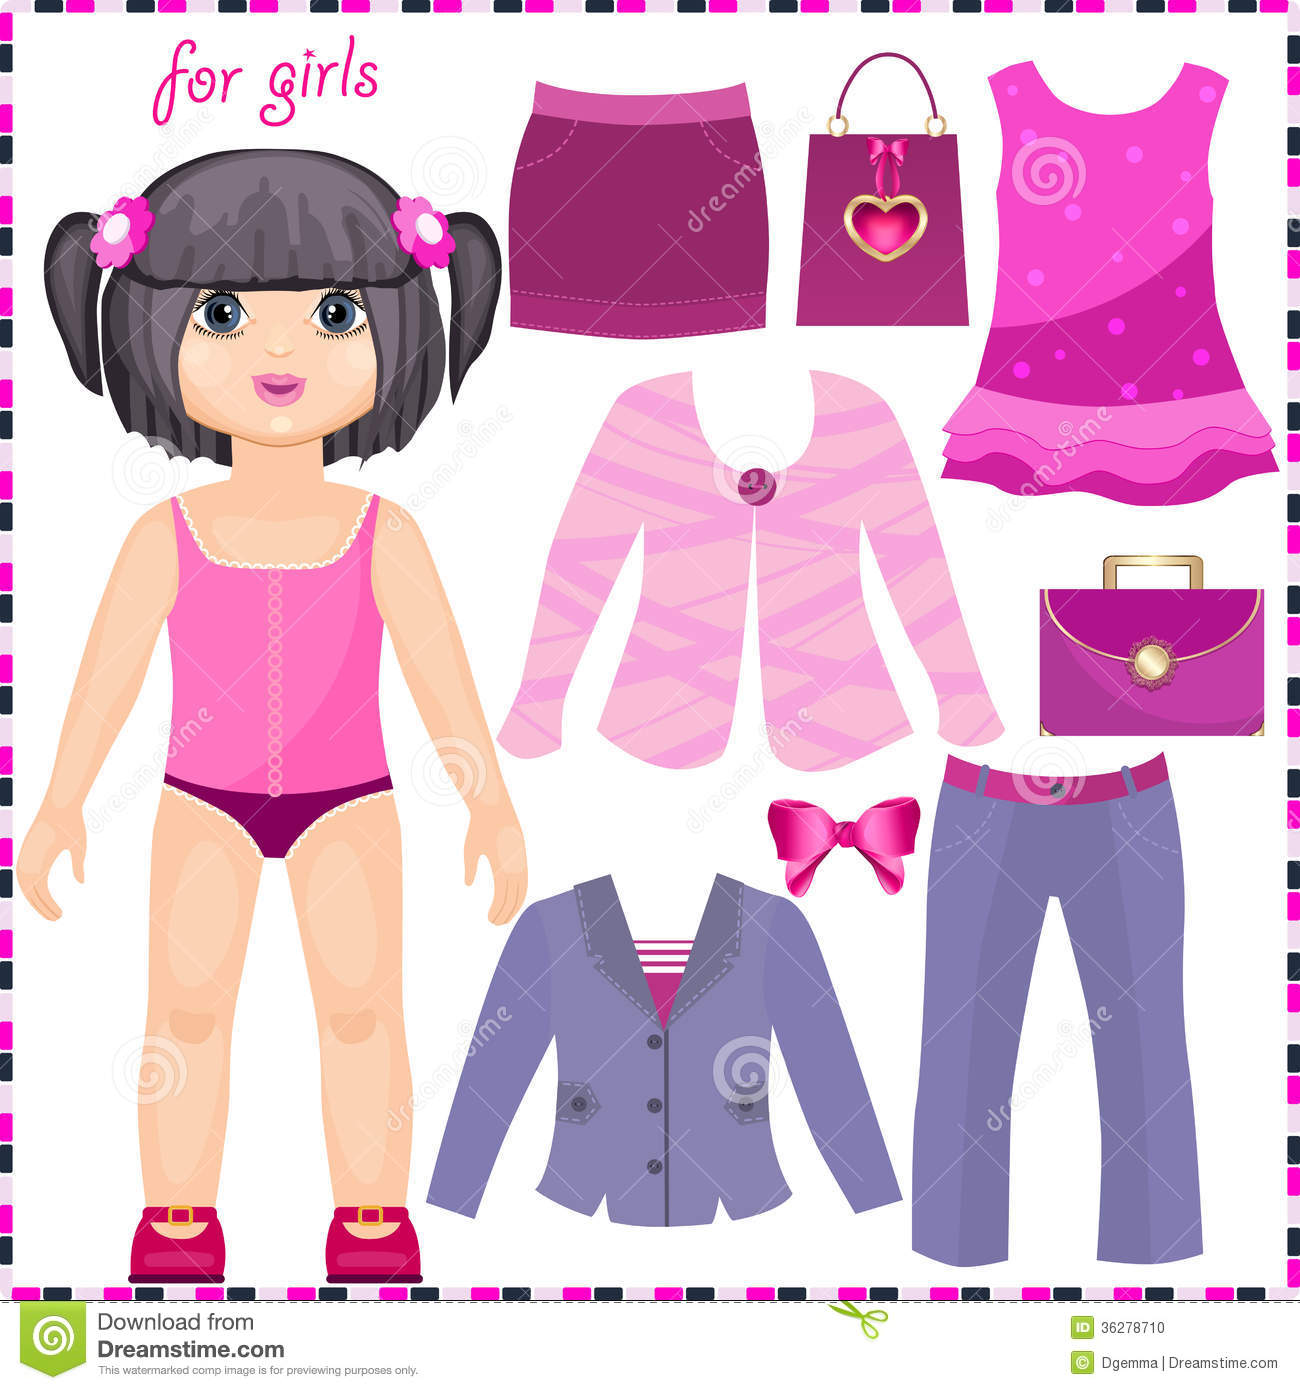 printable paper doll body male models picture